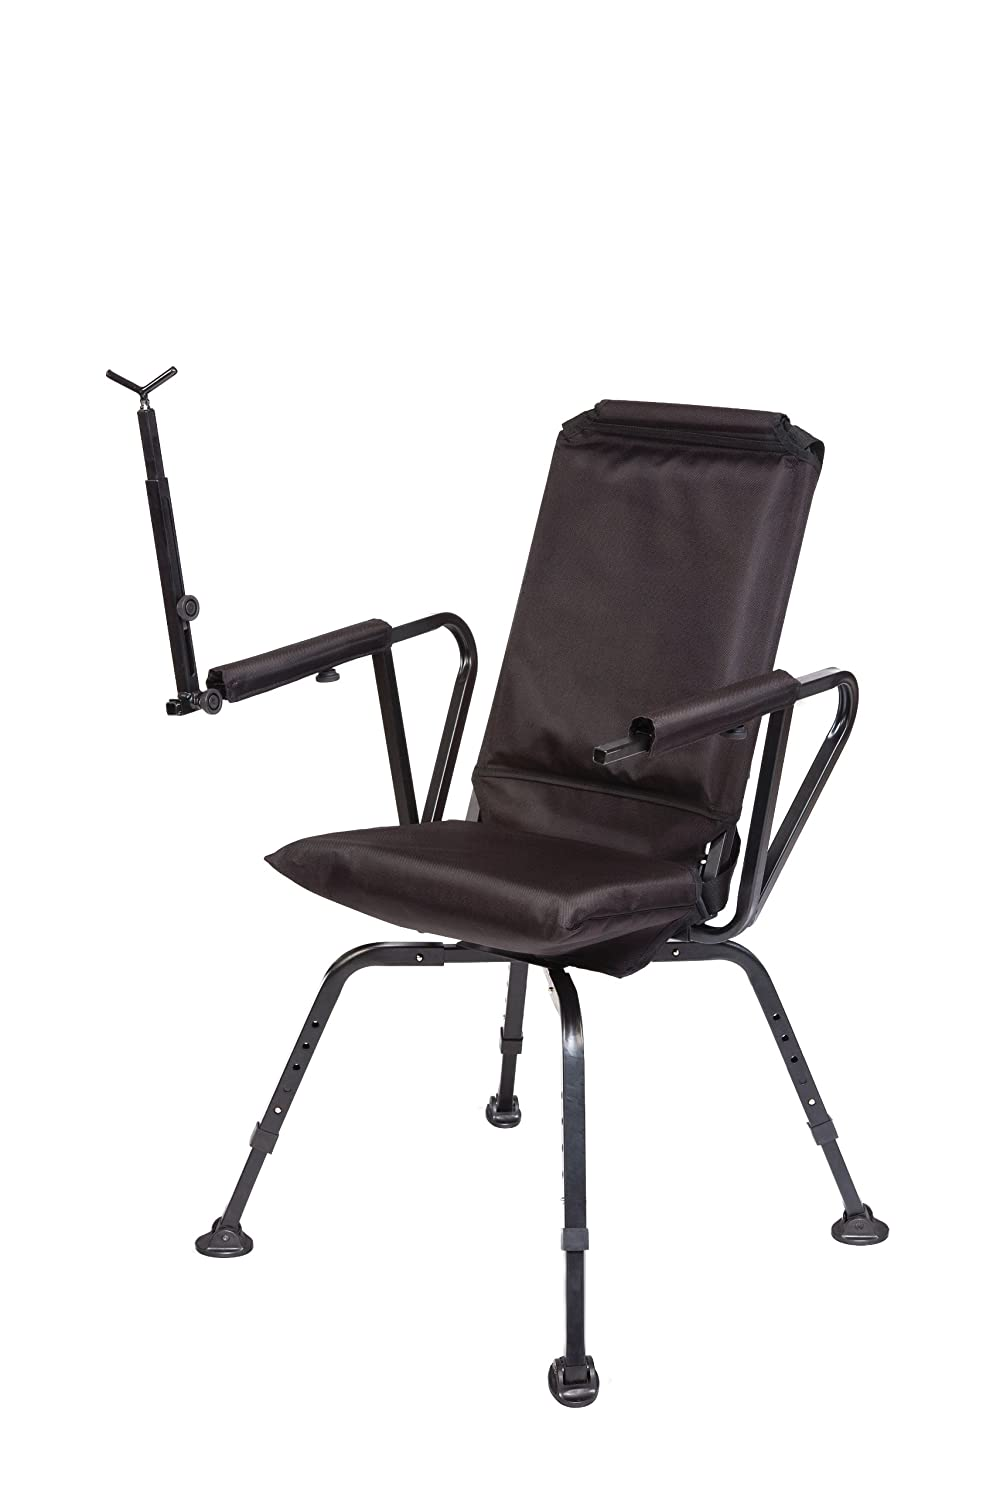 Sniper 360 Hunters Chair By BenchMaster